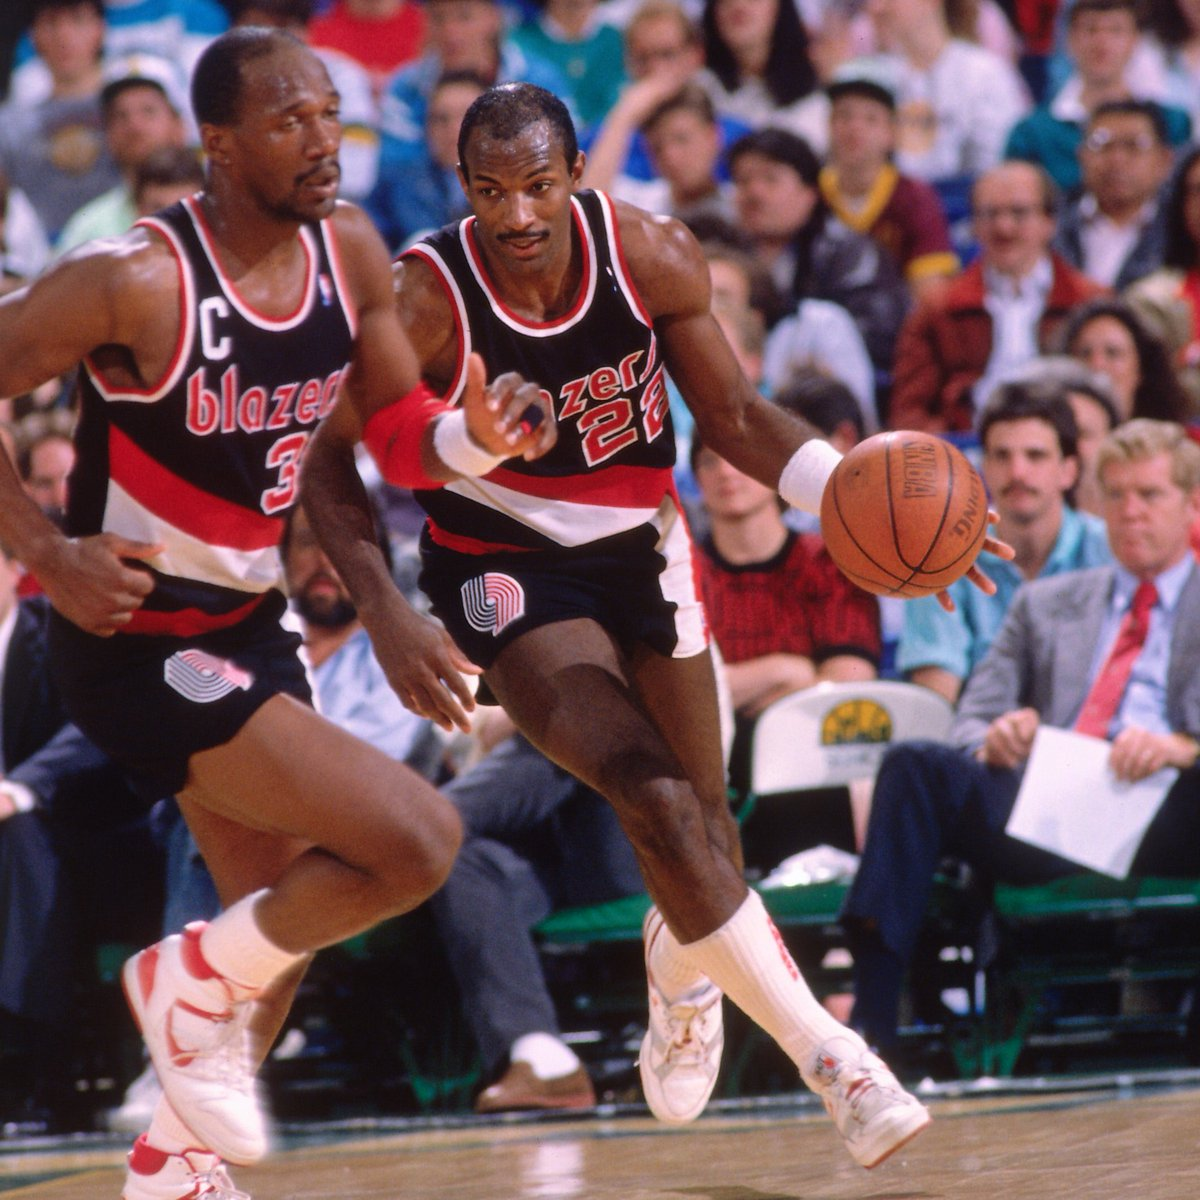 Damian Lillard (40 PTS, 13 AST) and CJ McCollum (28 PTS, 10 AST) are the first @trailblazers duo with 25+ PTS and 10+ AST in a game since Clyde Drexler (34 PTS, 12 AST) and Terry Porter (25 PTS, 10 AST) on March 6, 1992. https://t.co/IgSlxMFyx0